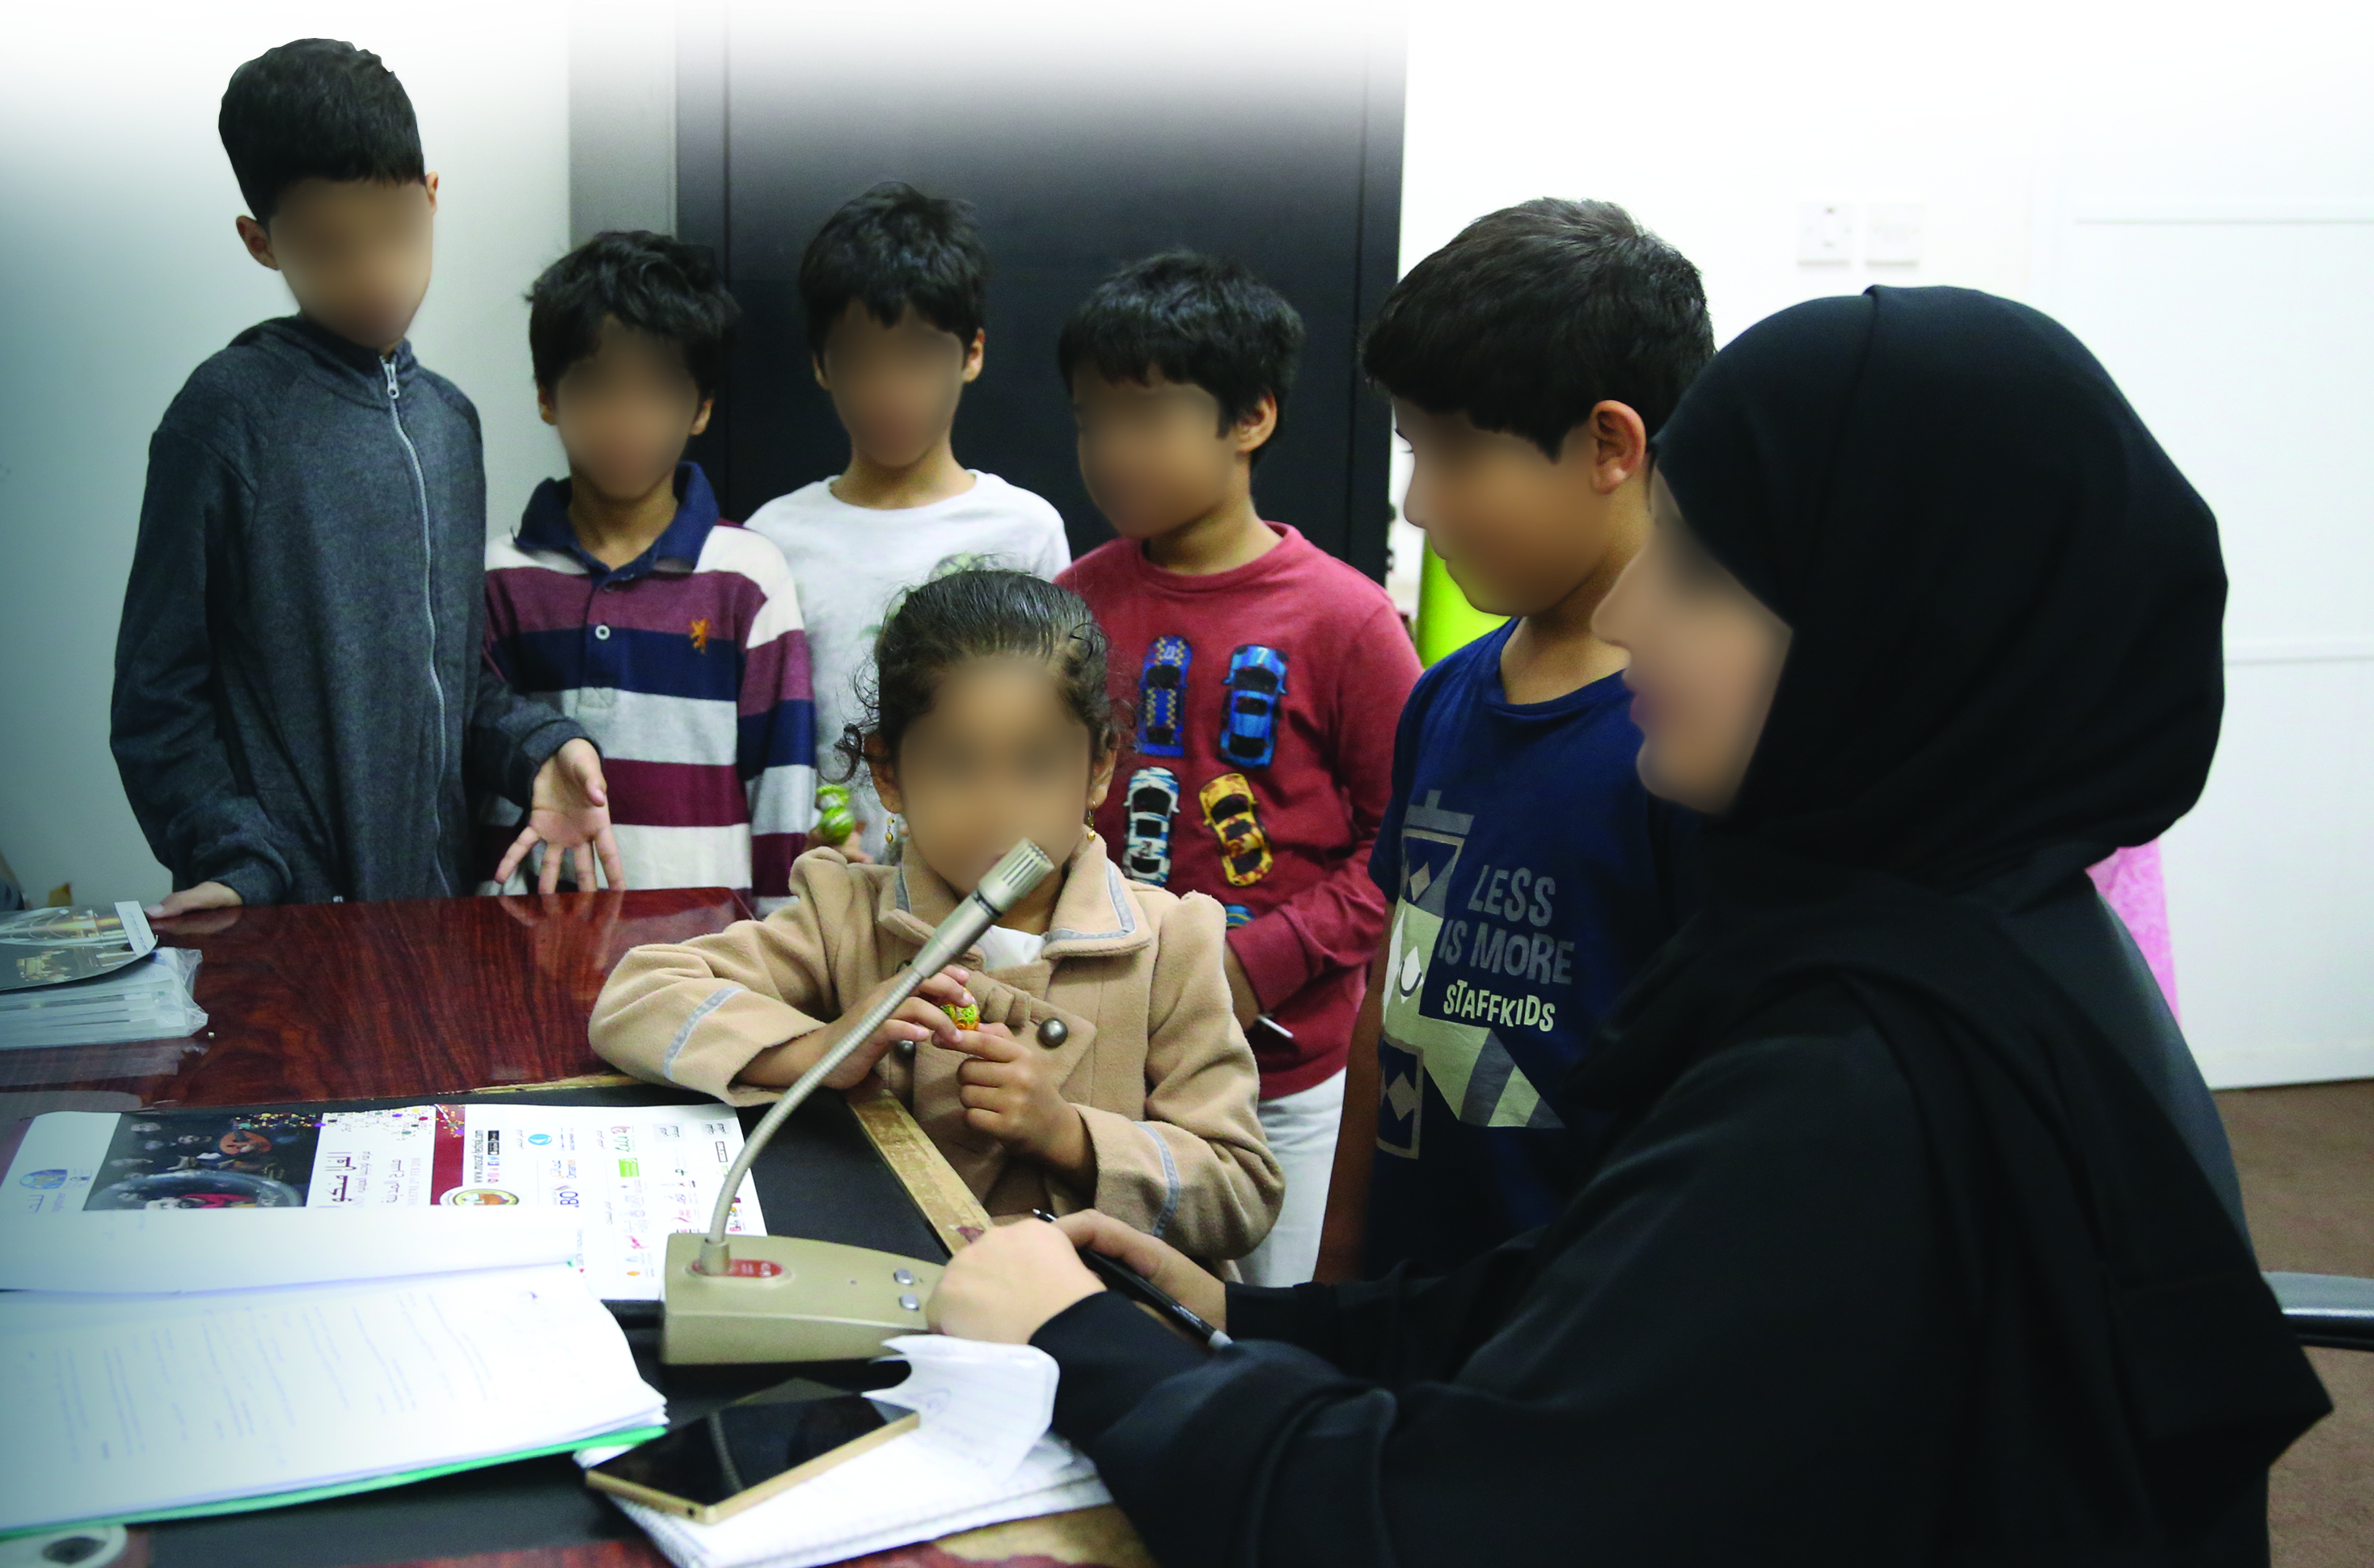 30 lost children a day at Muscat Festival in Oman